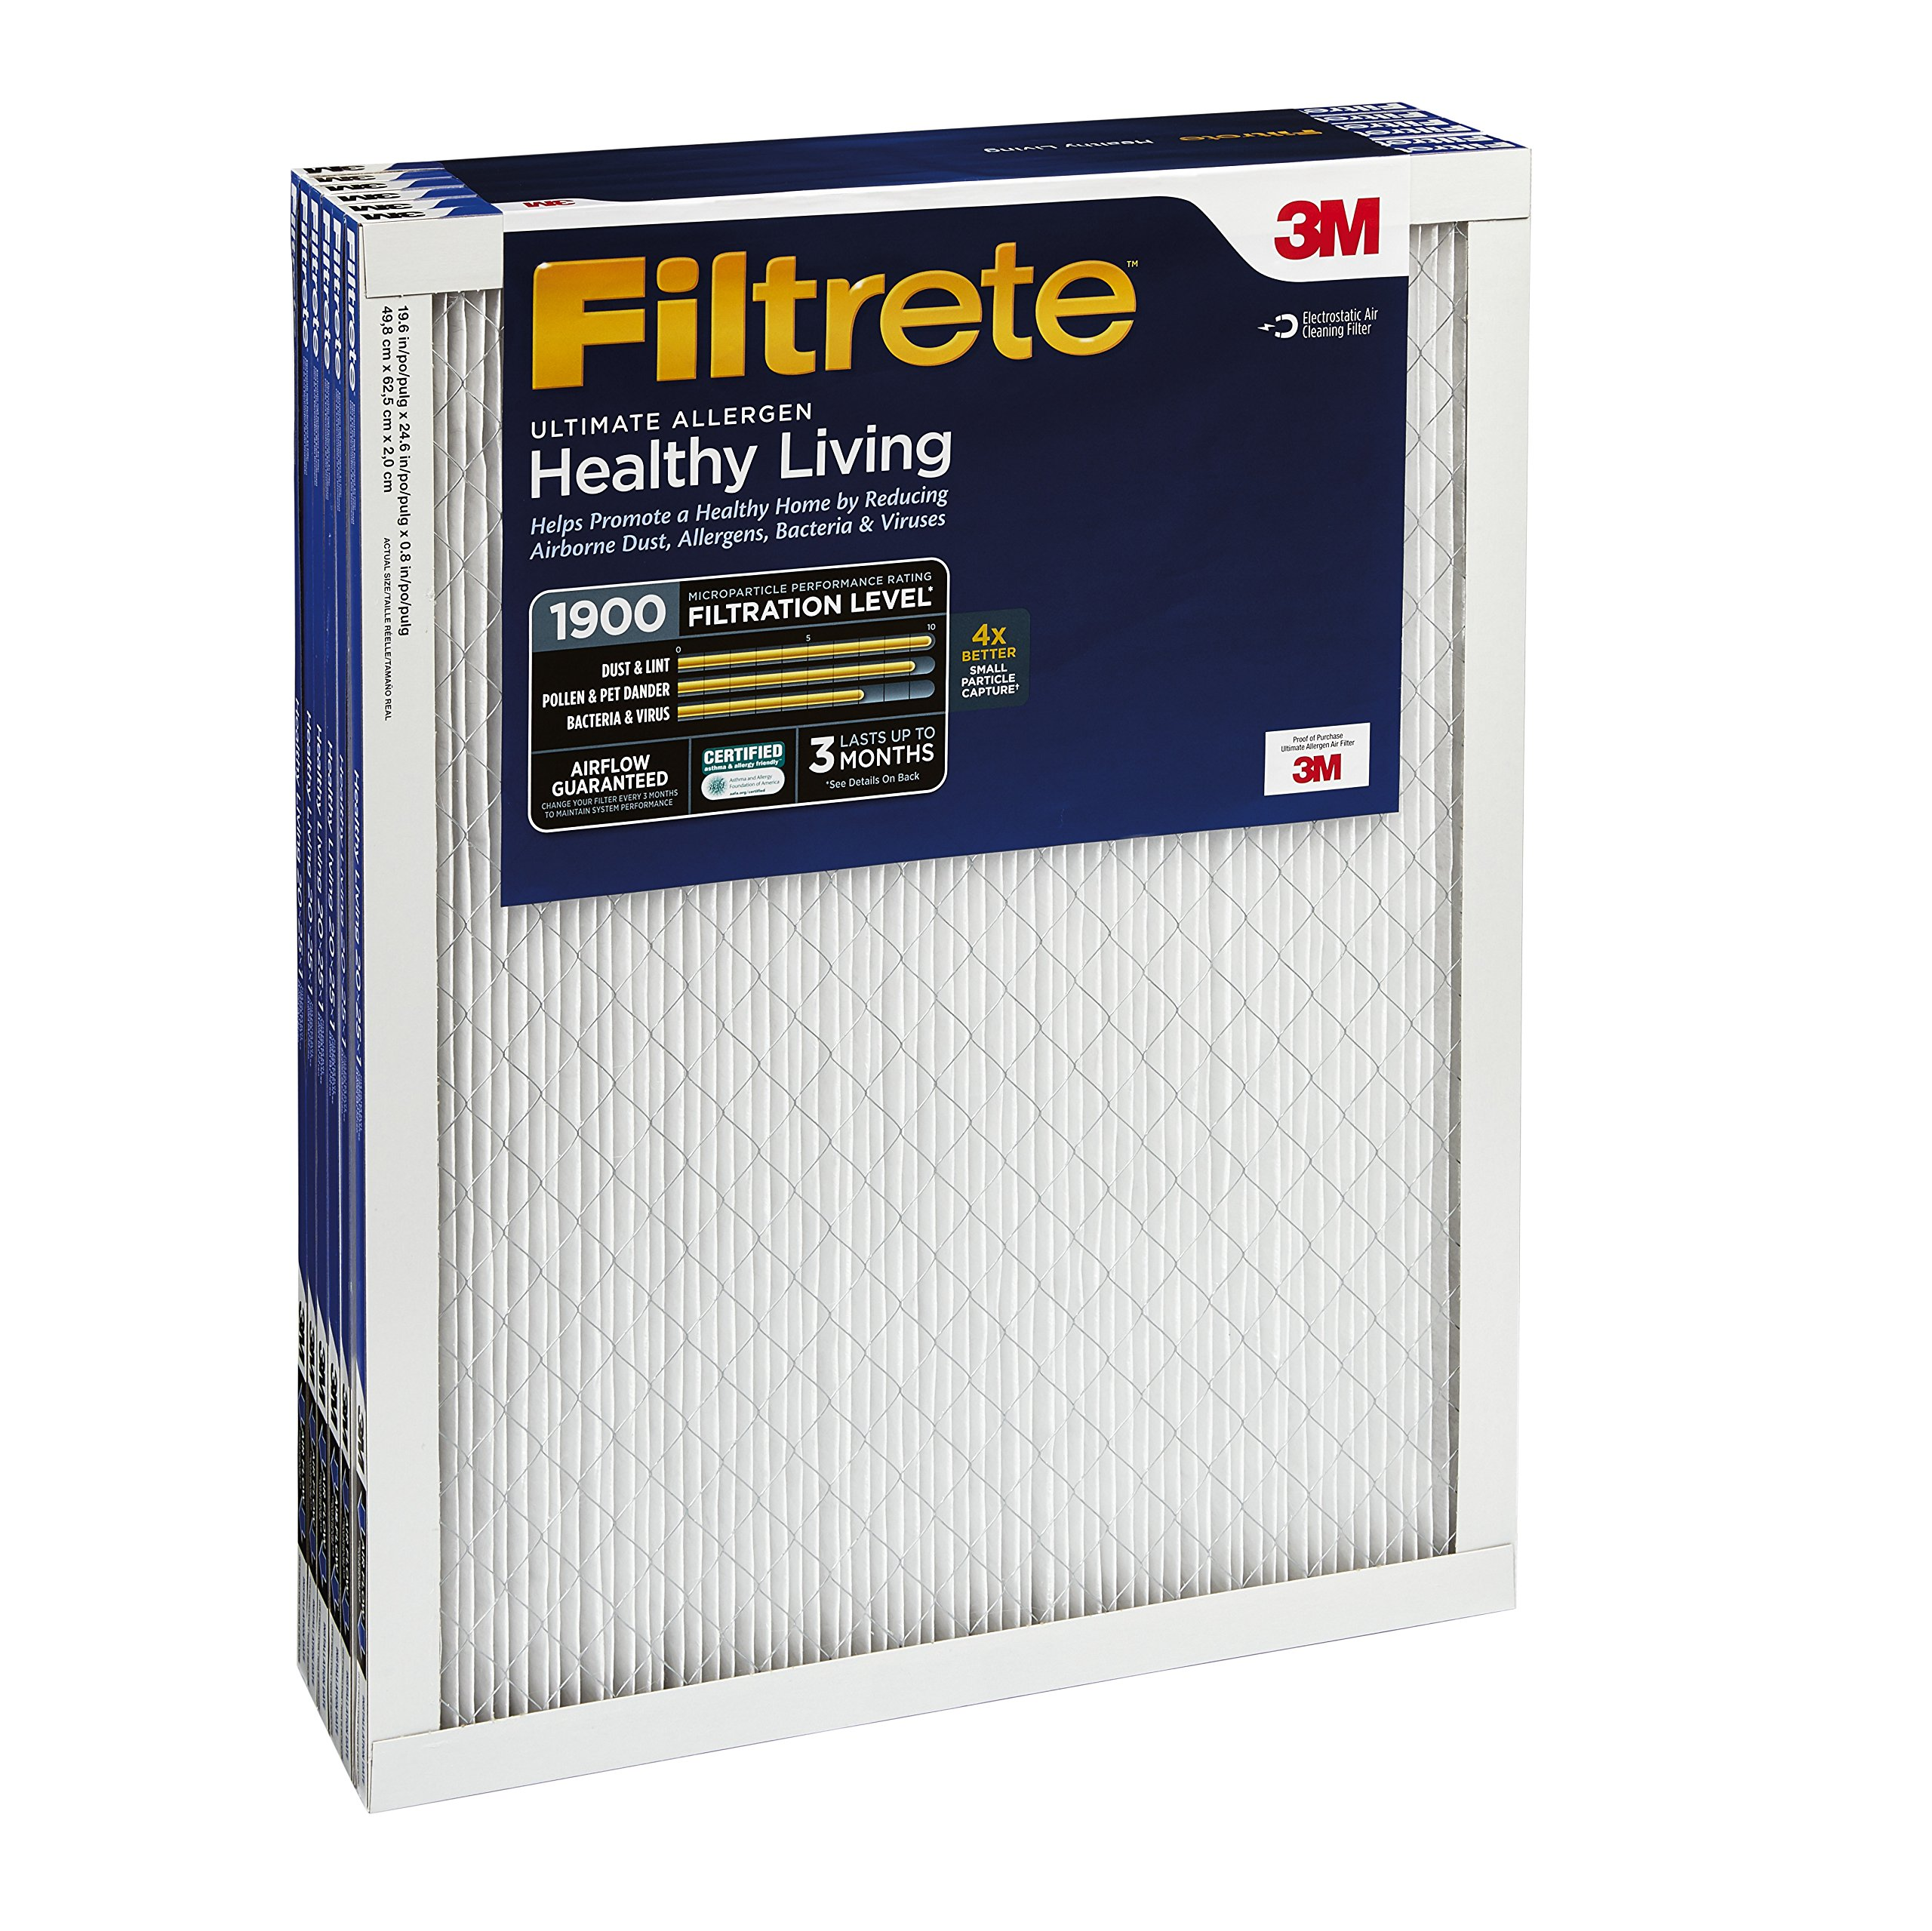 Filtrete MPR 1900 24 x 24 x 1 Healthy Living Ultimate Allergen Reduction AC Furnace Air Filter, Attracts Fine Inhalable Particles, Guaranteed Airflow up to 90 days, 6-Pack by Filtrete (Image #4)